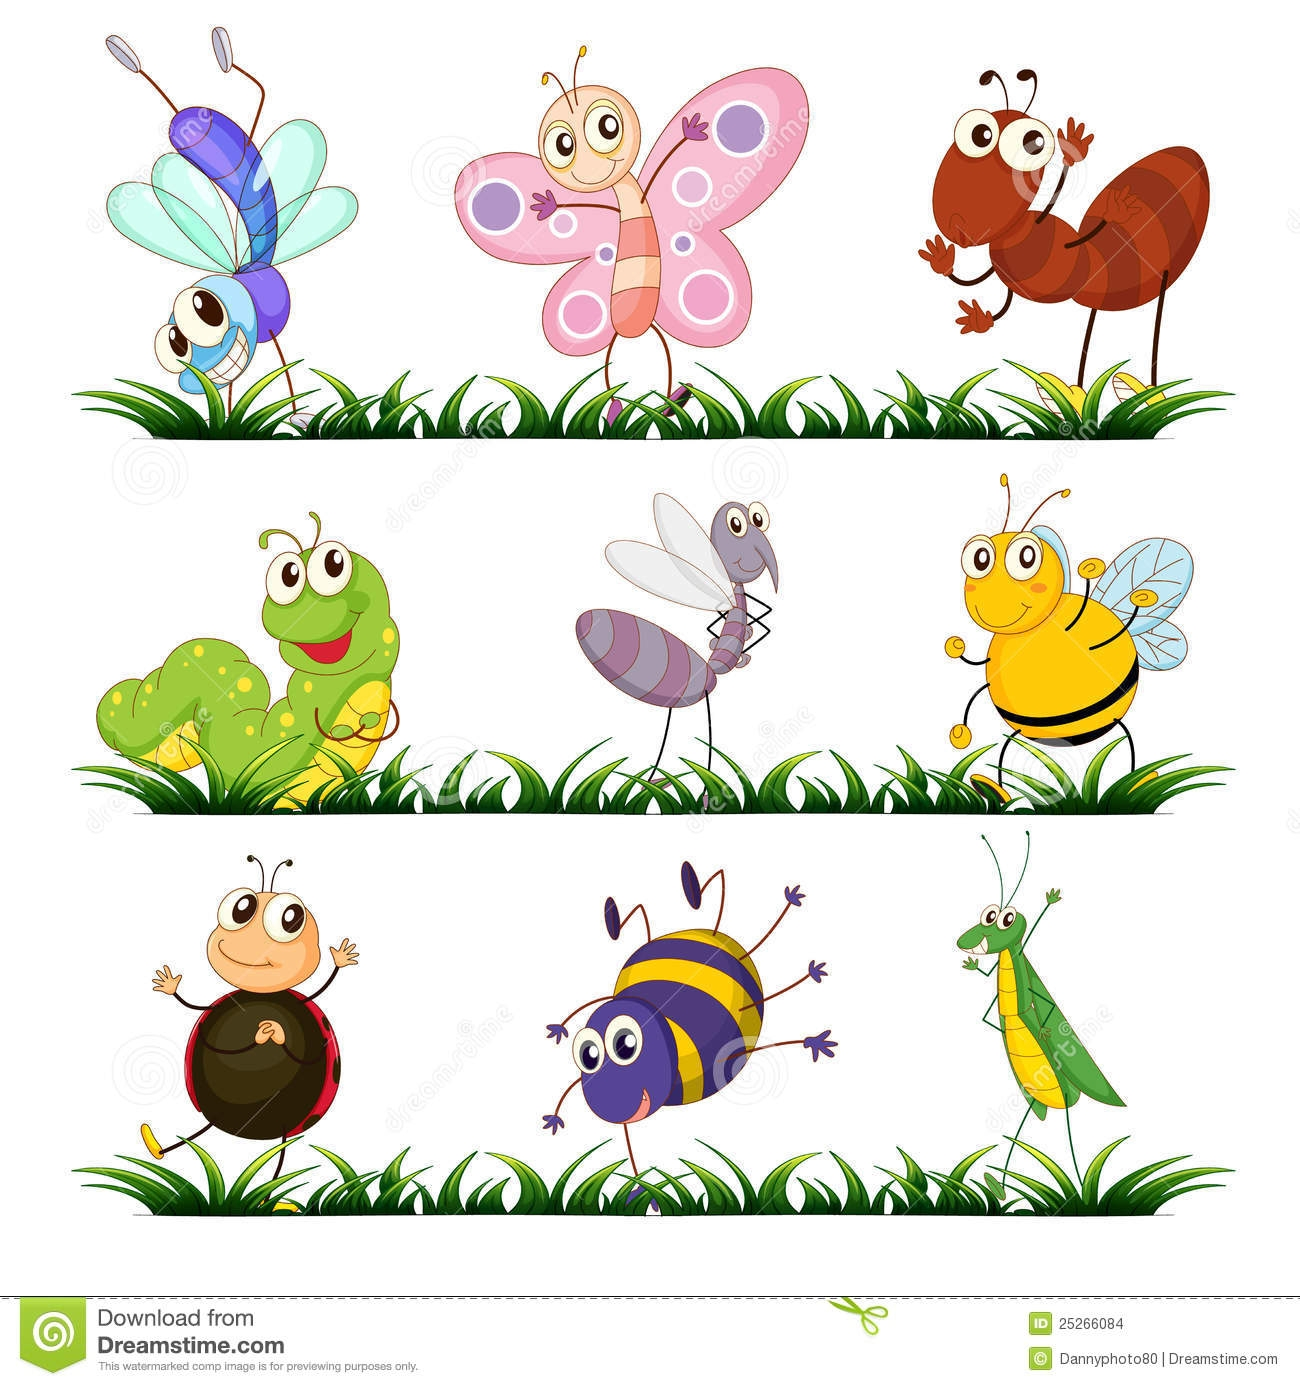 Insects clipart. Unique design digital collection